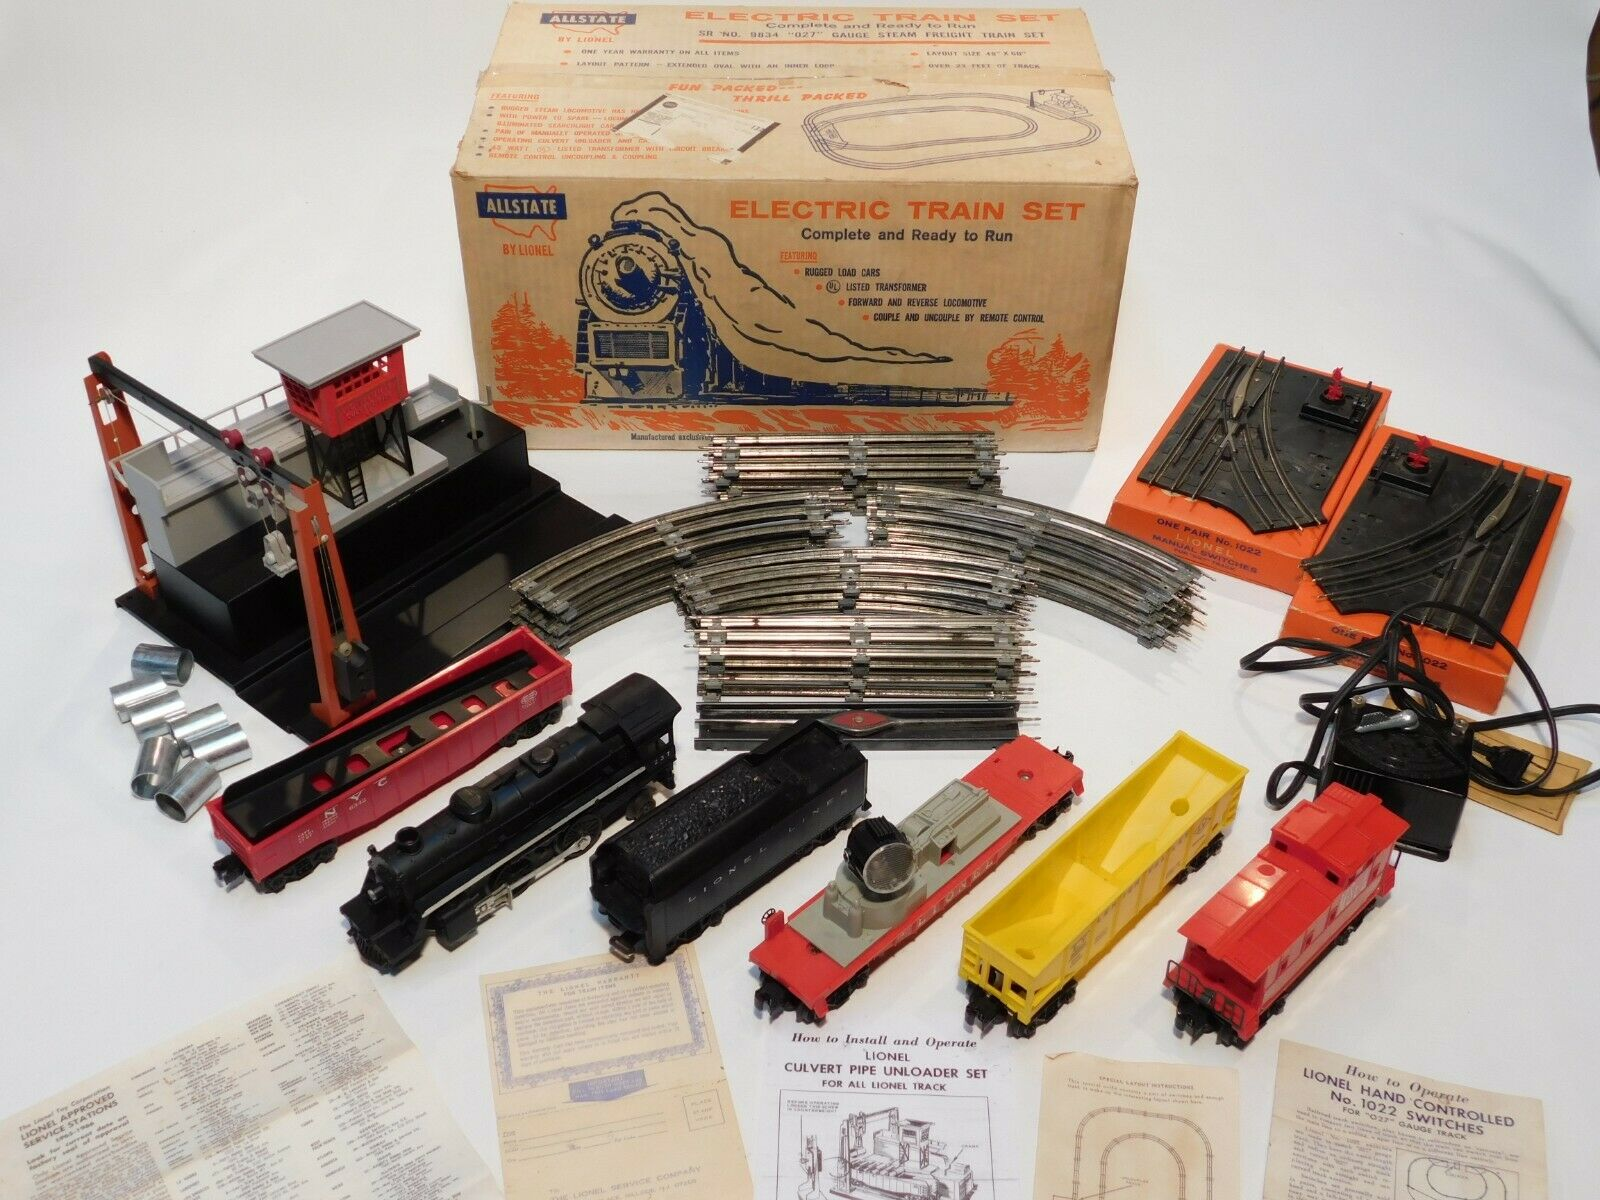 SEARS 9834 ALLSTATE BY LIONEL SET BOX w COMPONENTS 346,237,6176,6822,6342,6059